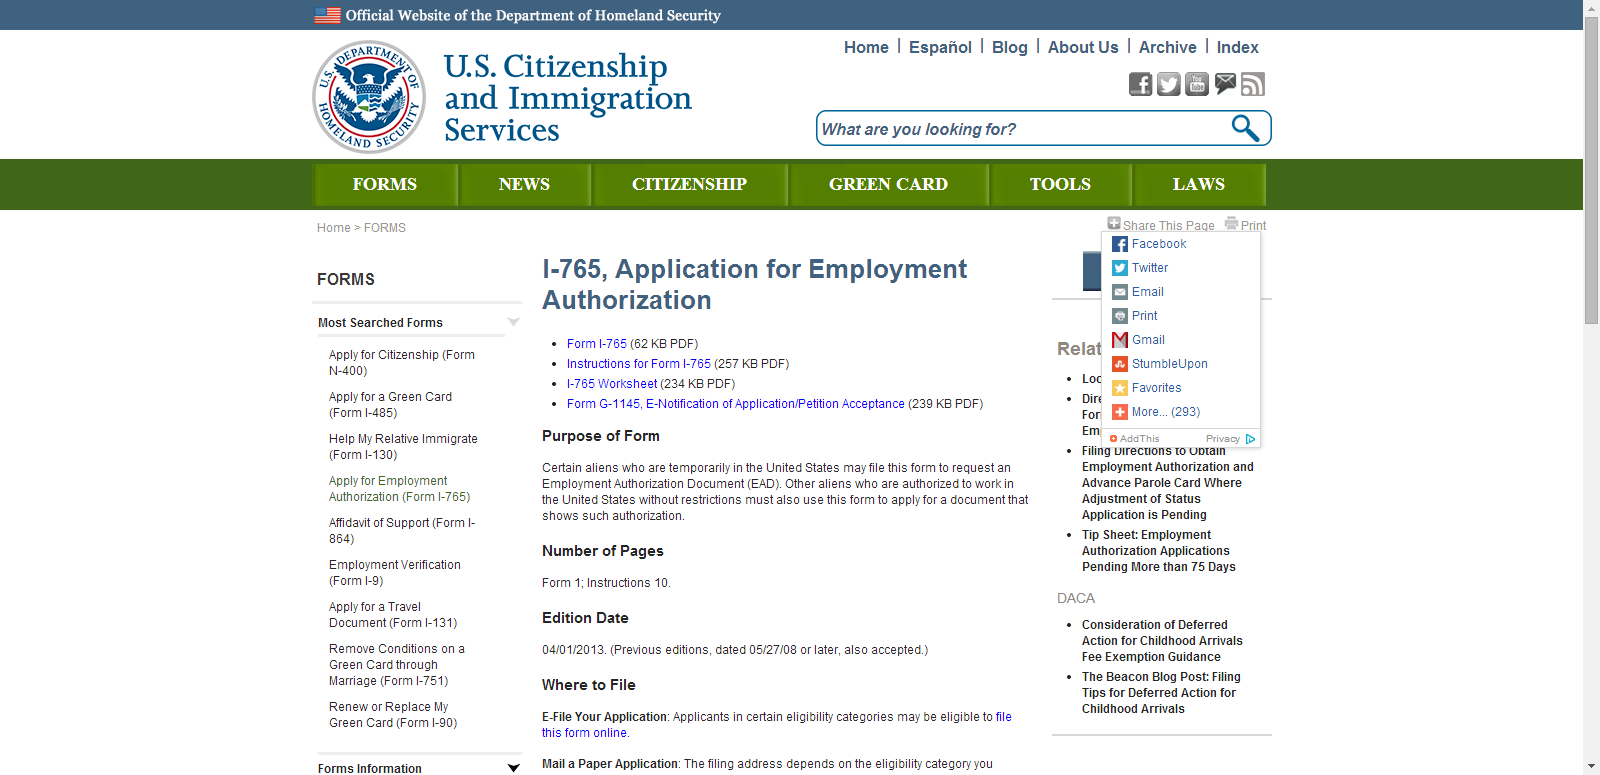 Uscis Website With A Quick Overview On Understanding The